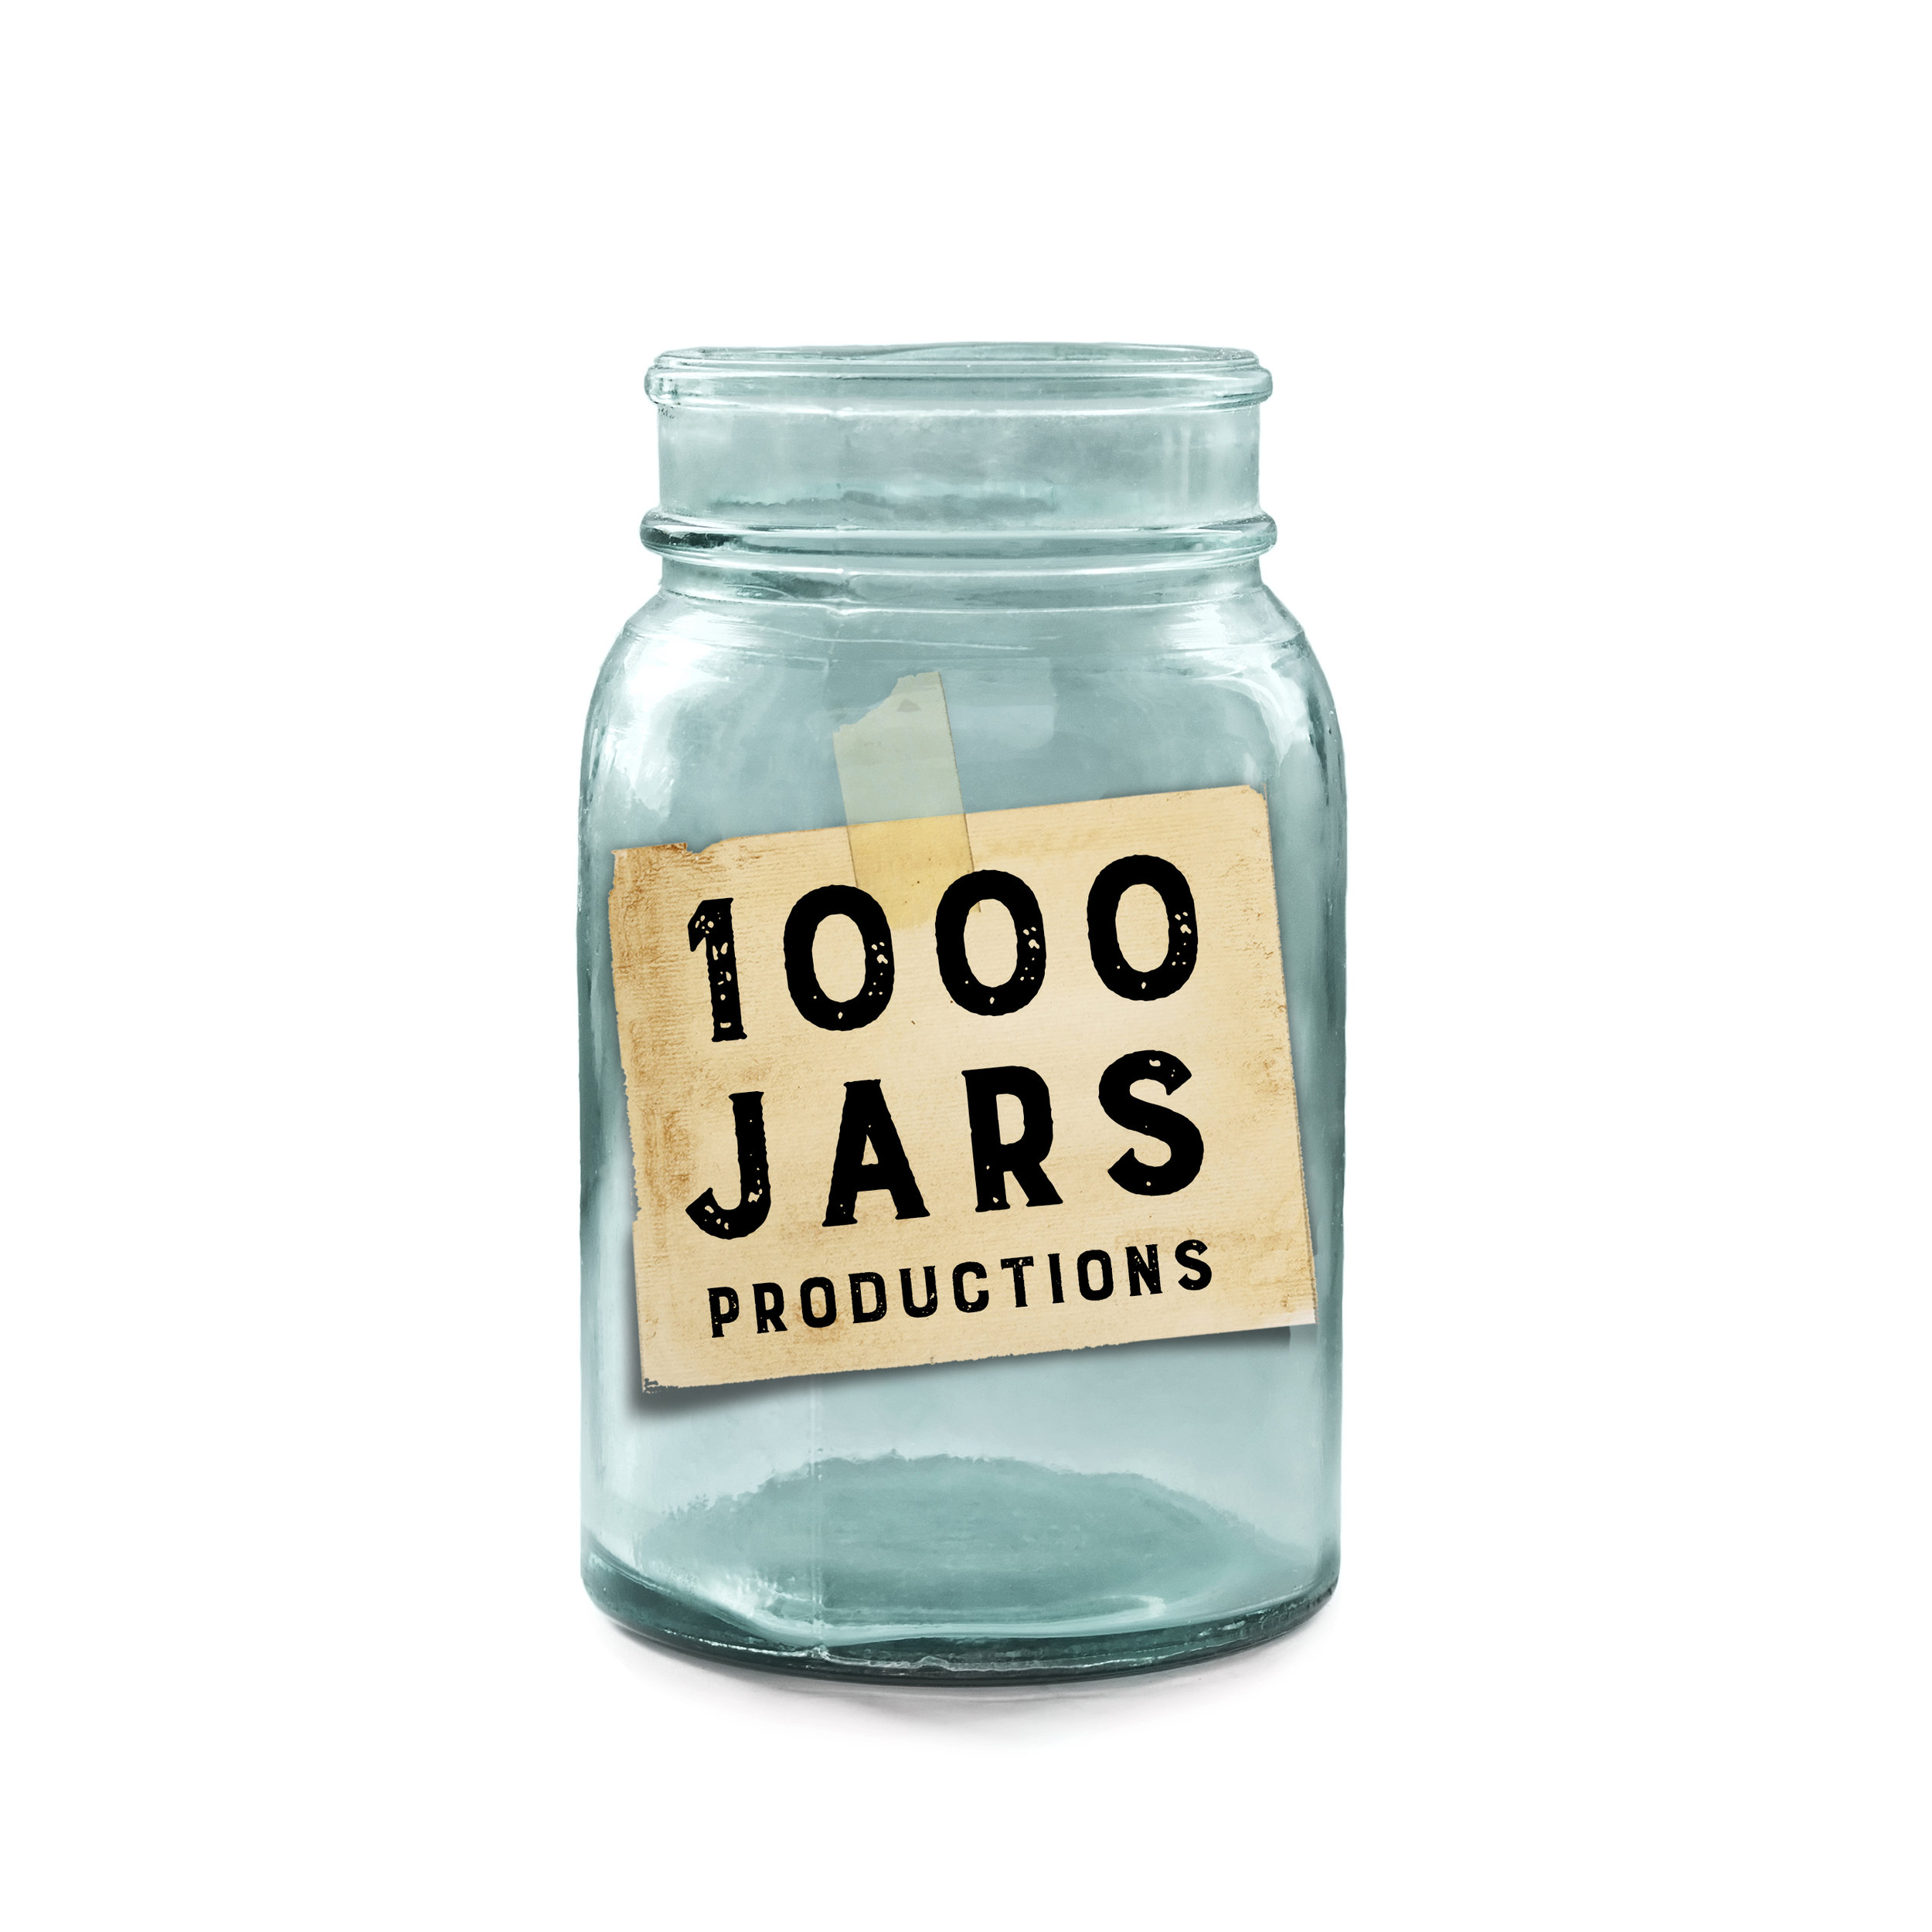 1000JARS jar alone_shutterstock_222872431.jpeg